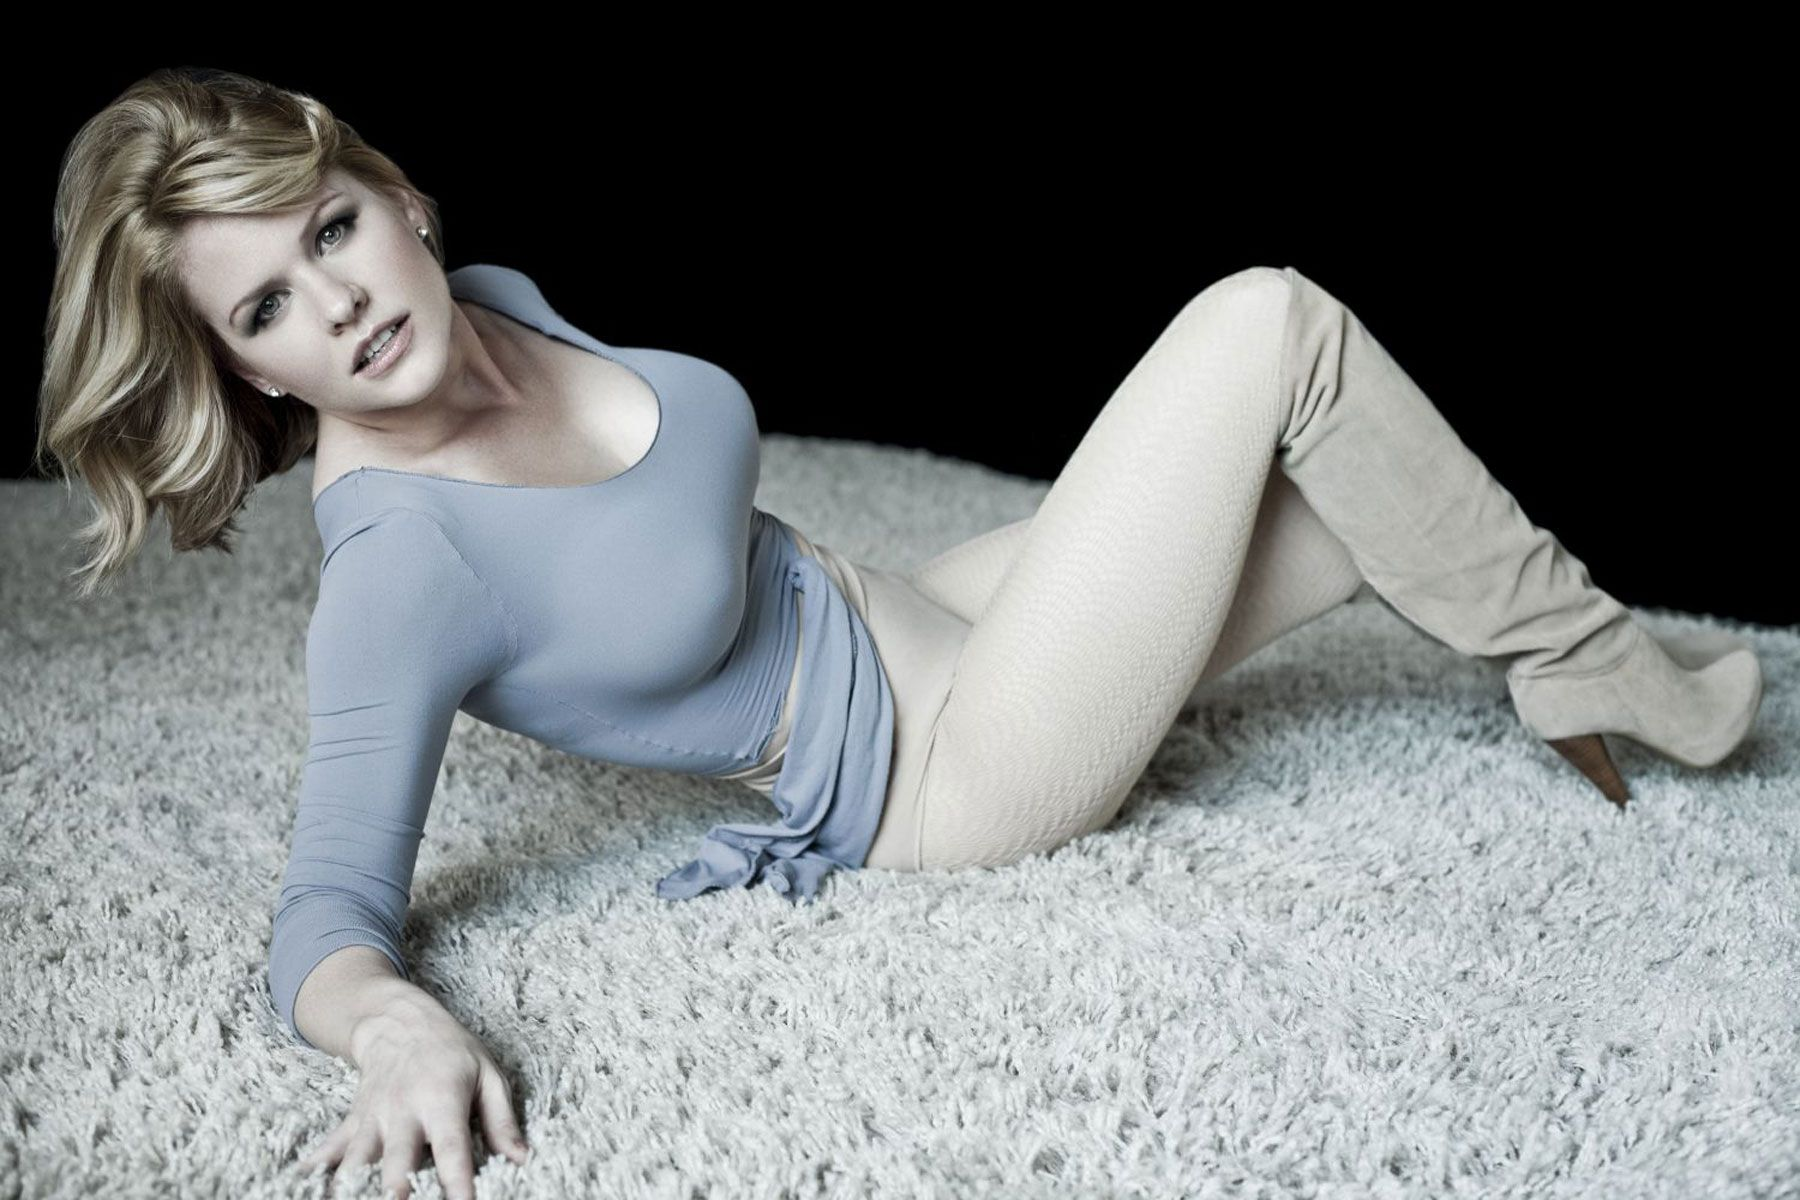 carrie keagan tumblr